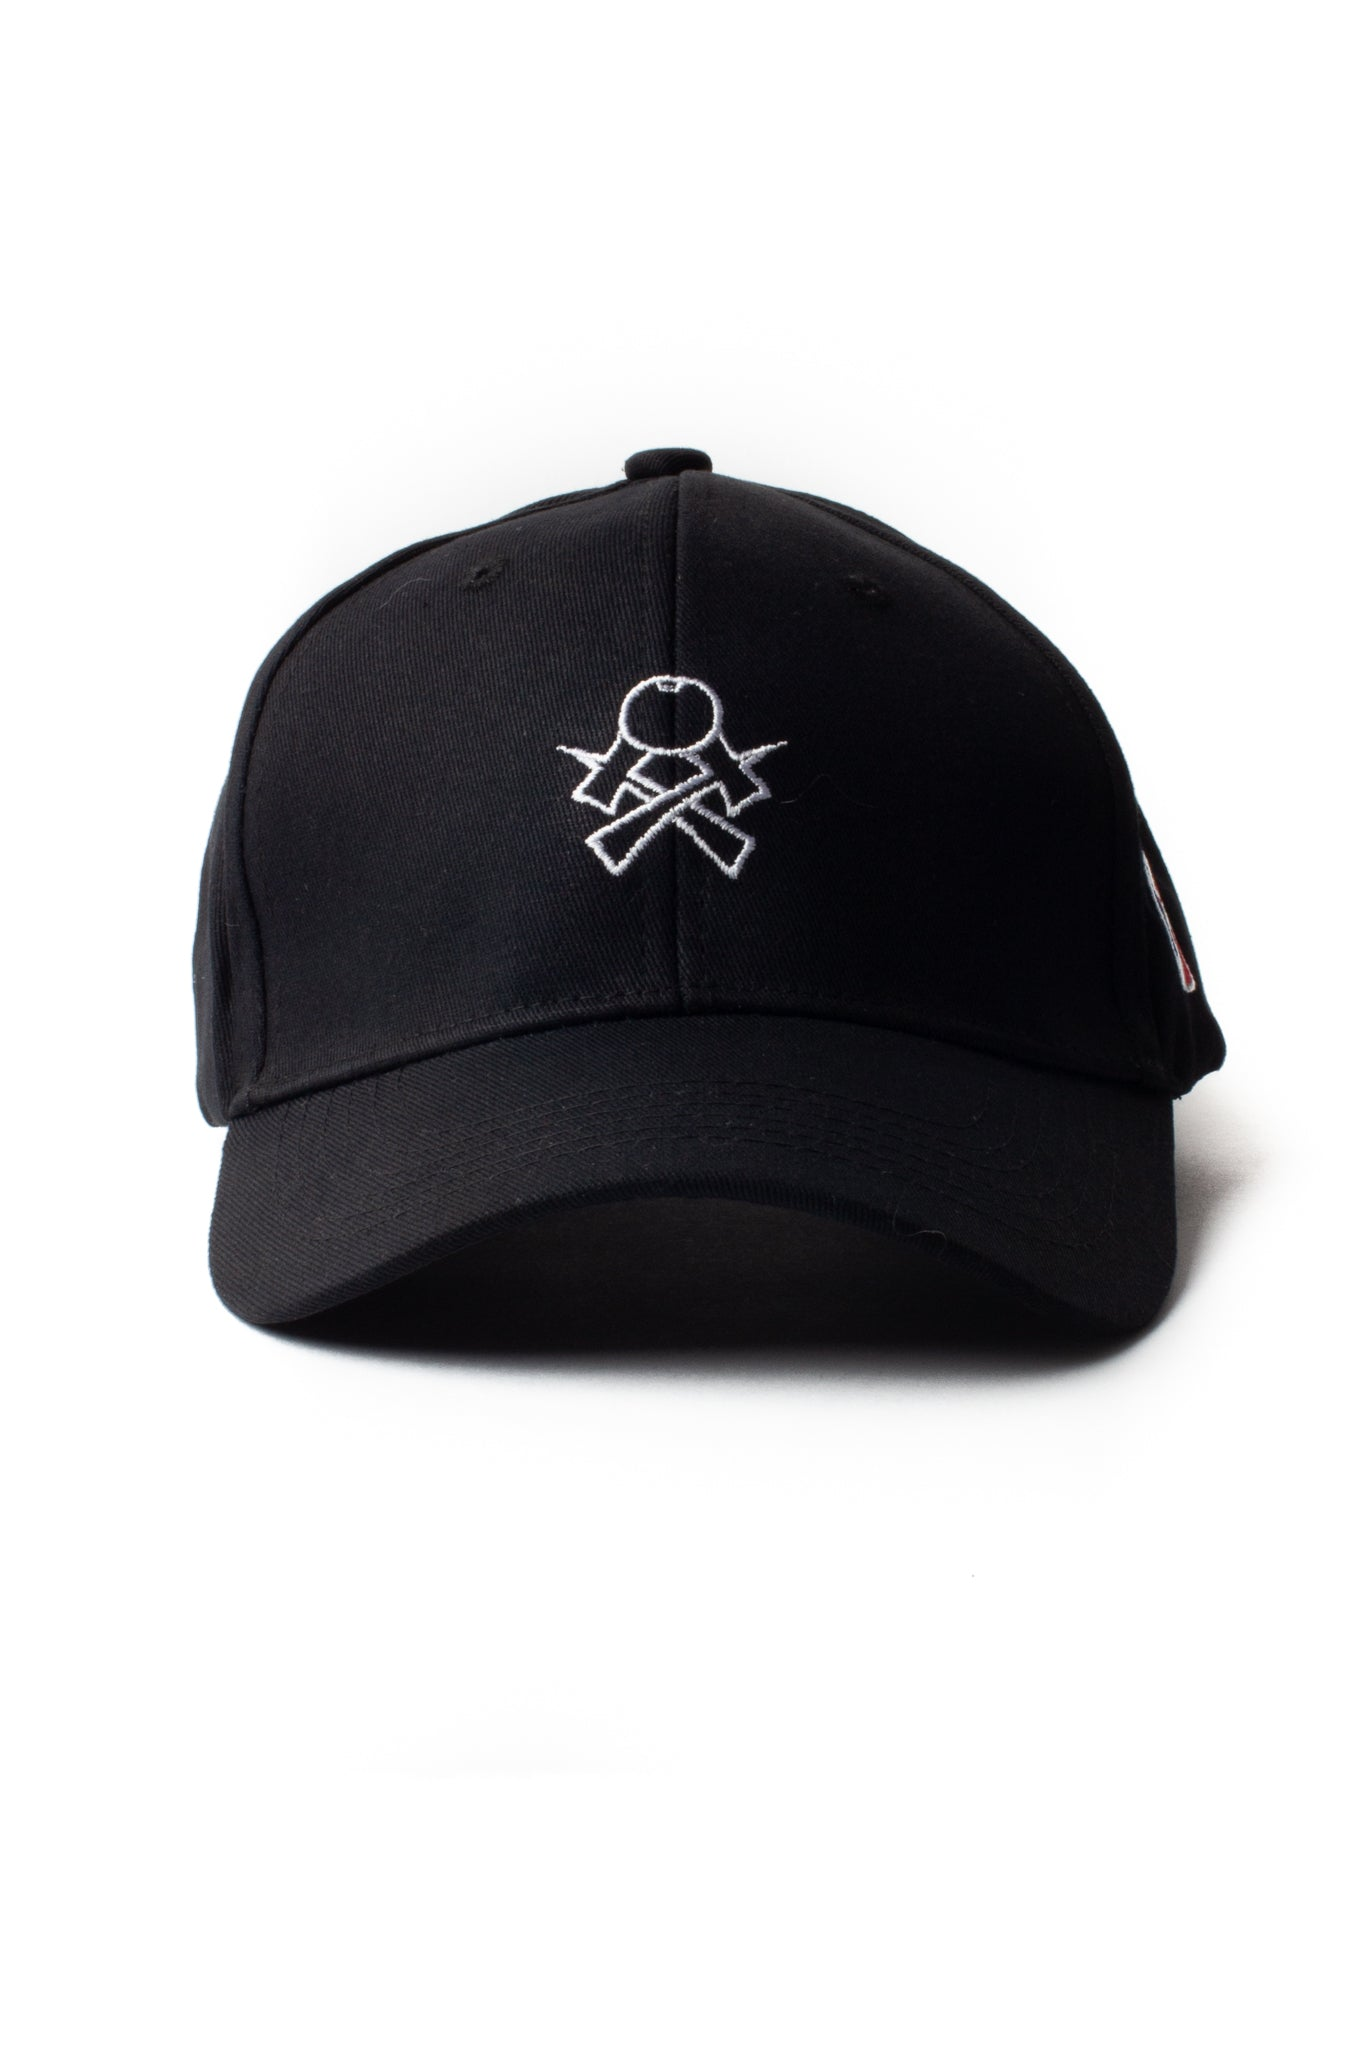 Sweets League Dad Hat